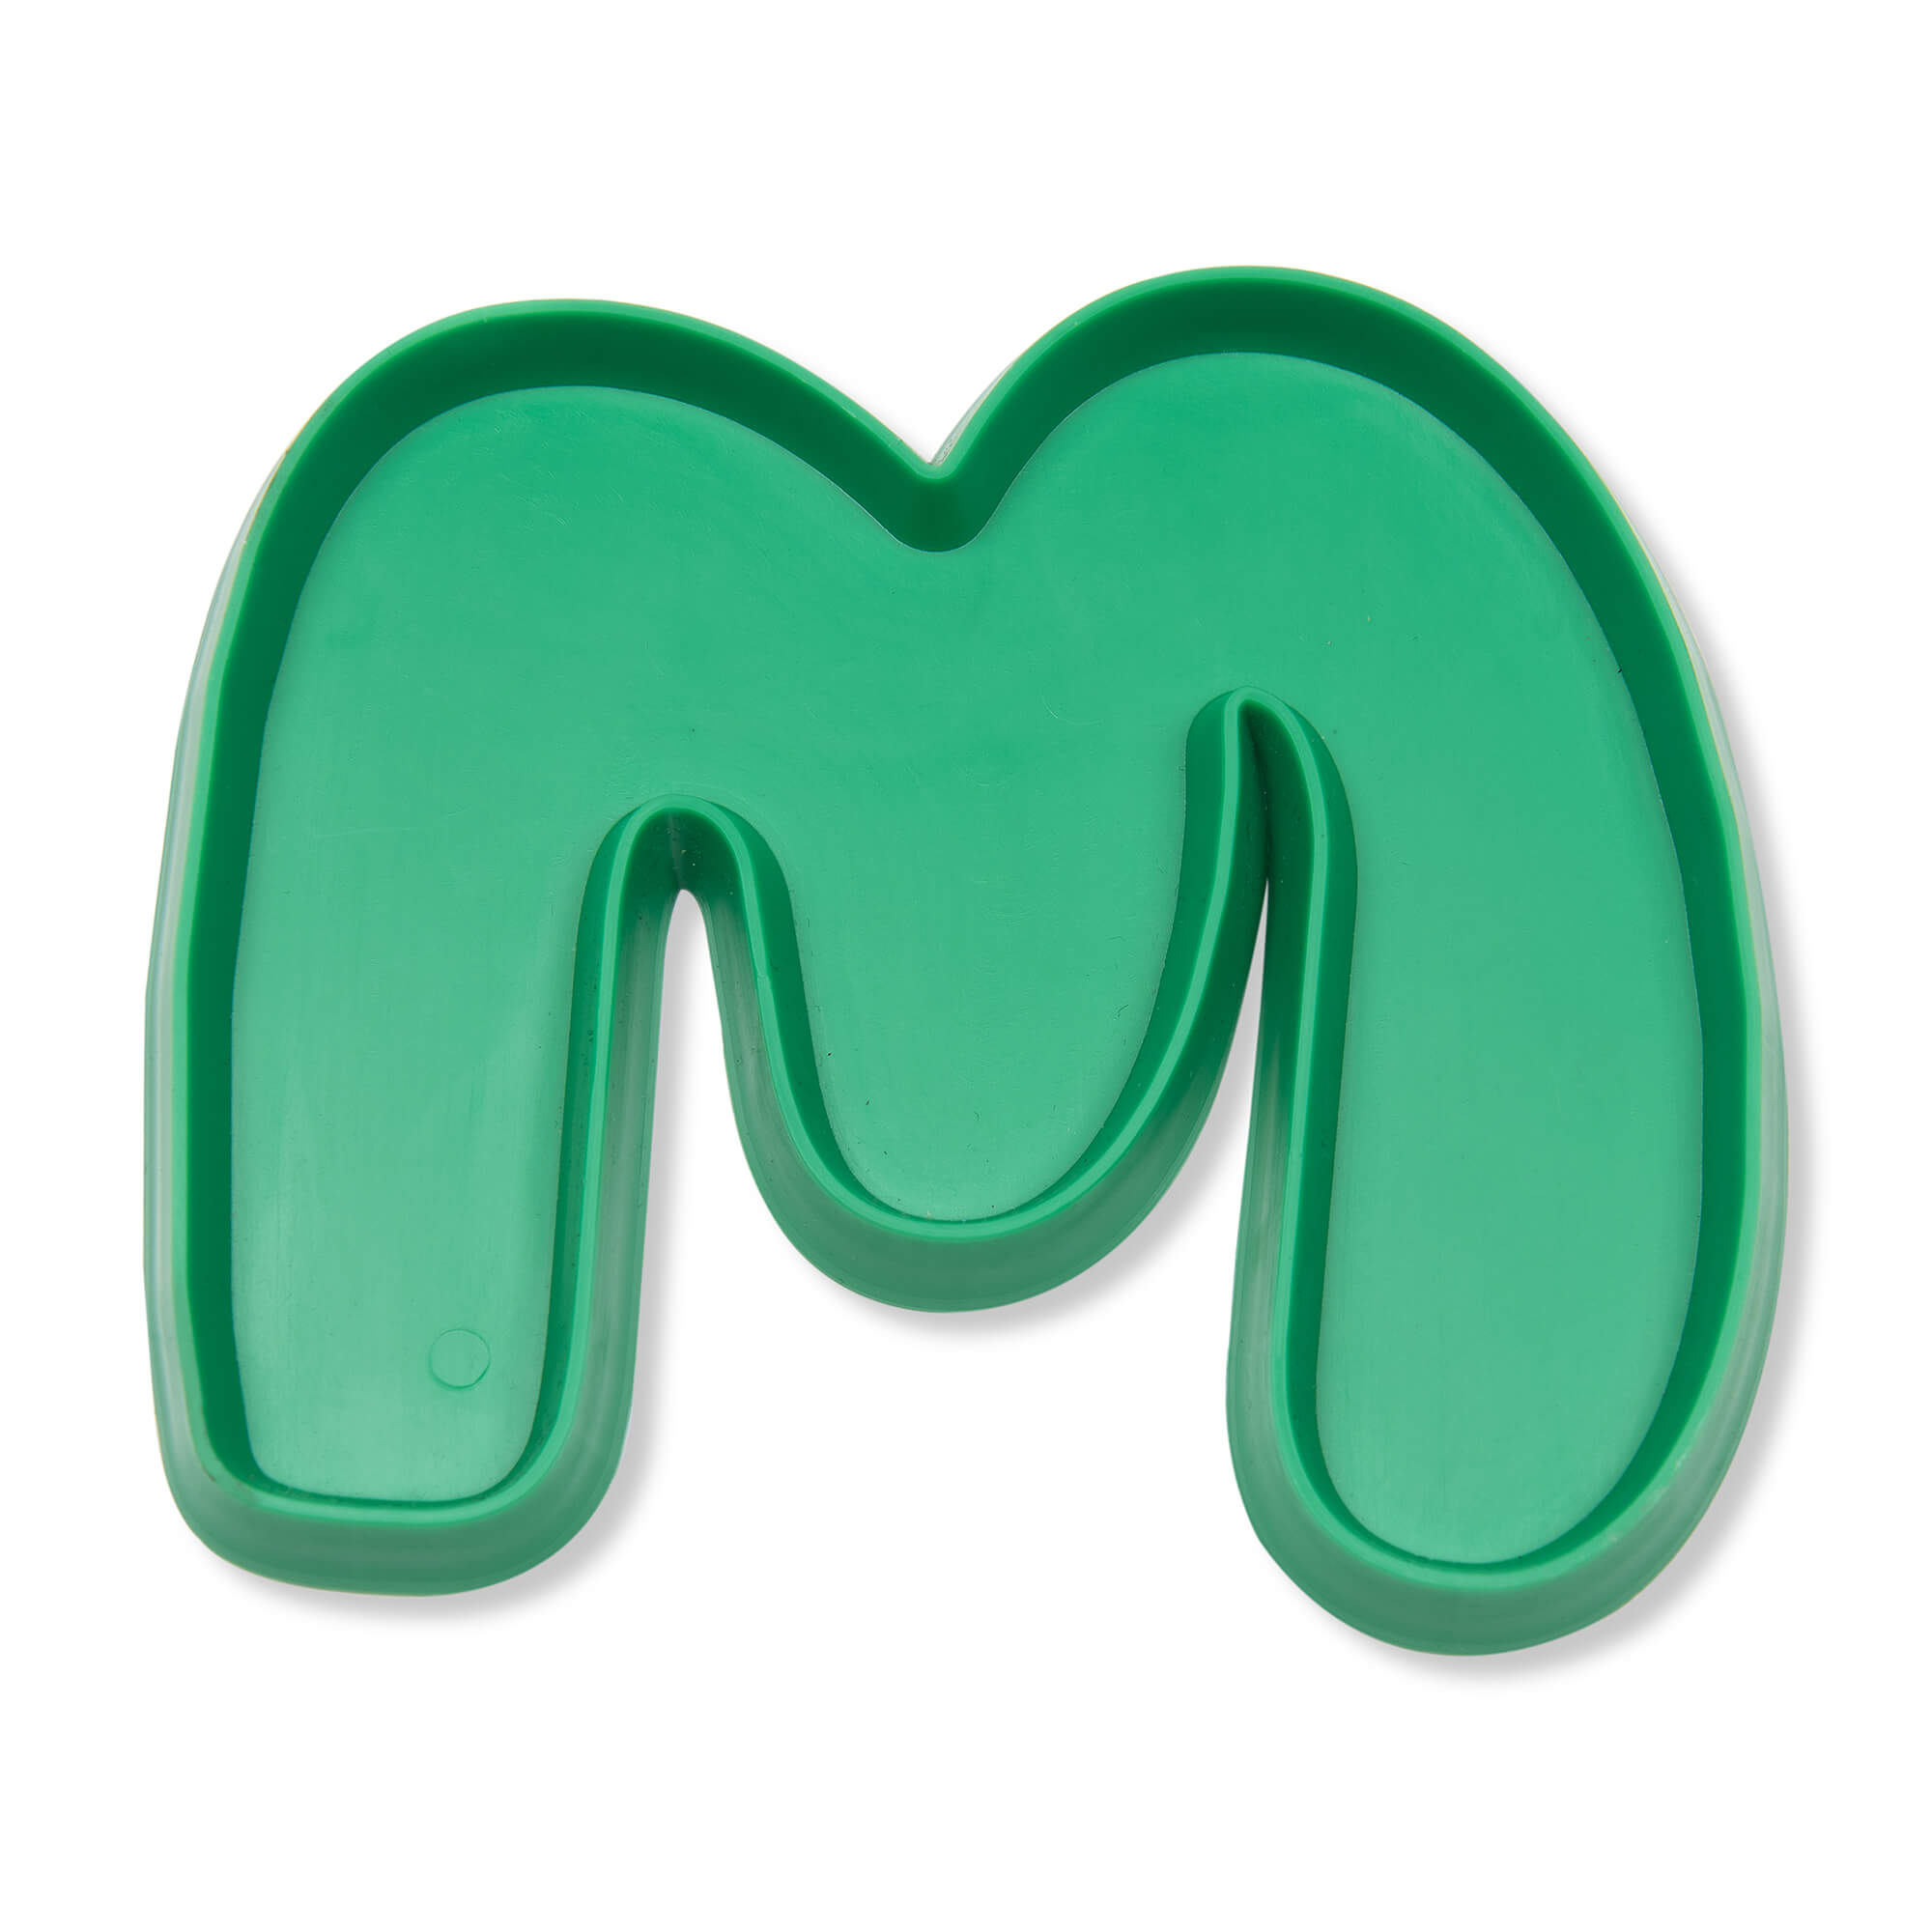 Coffee Morning biscuit cutter in the shape of the Macmillan font 'M'